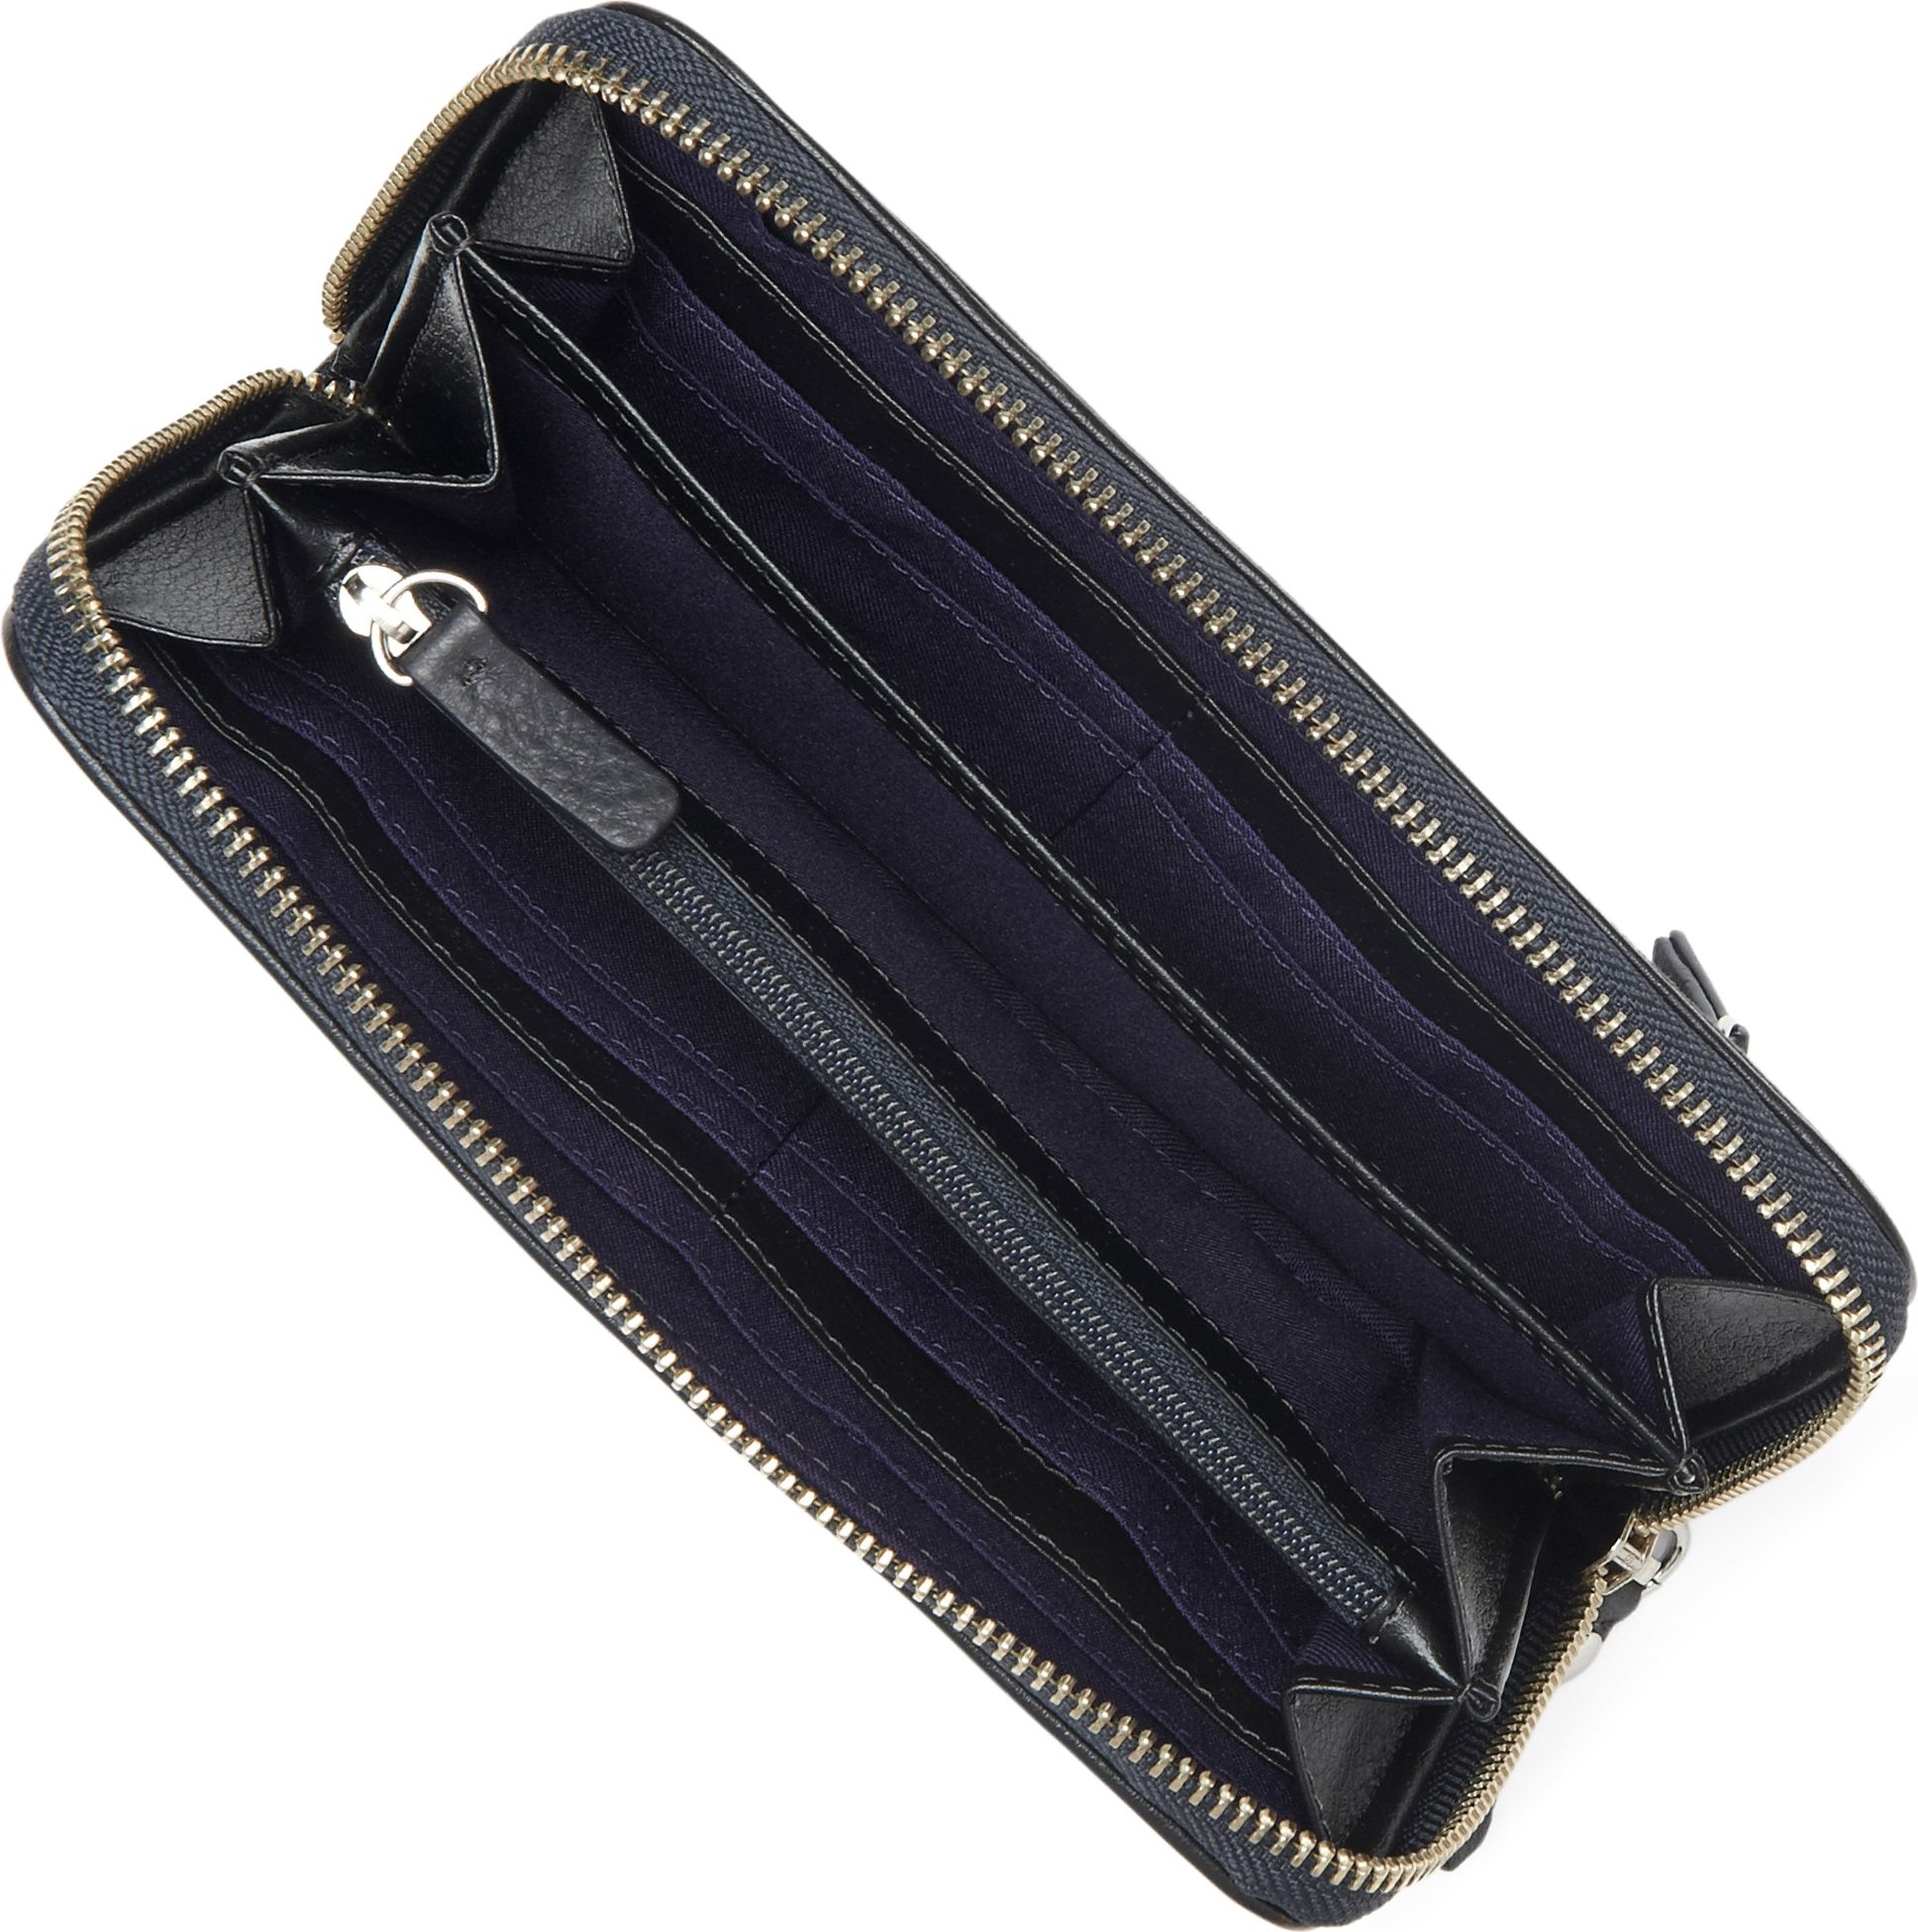 489af738d0c Juicy Couture All Hail Velour Wallet in Black - Lyst